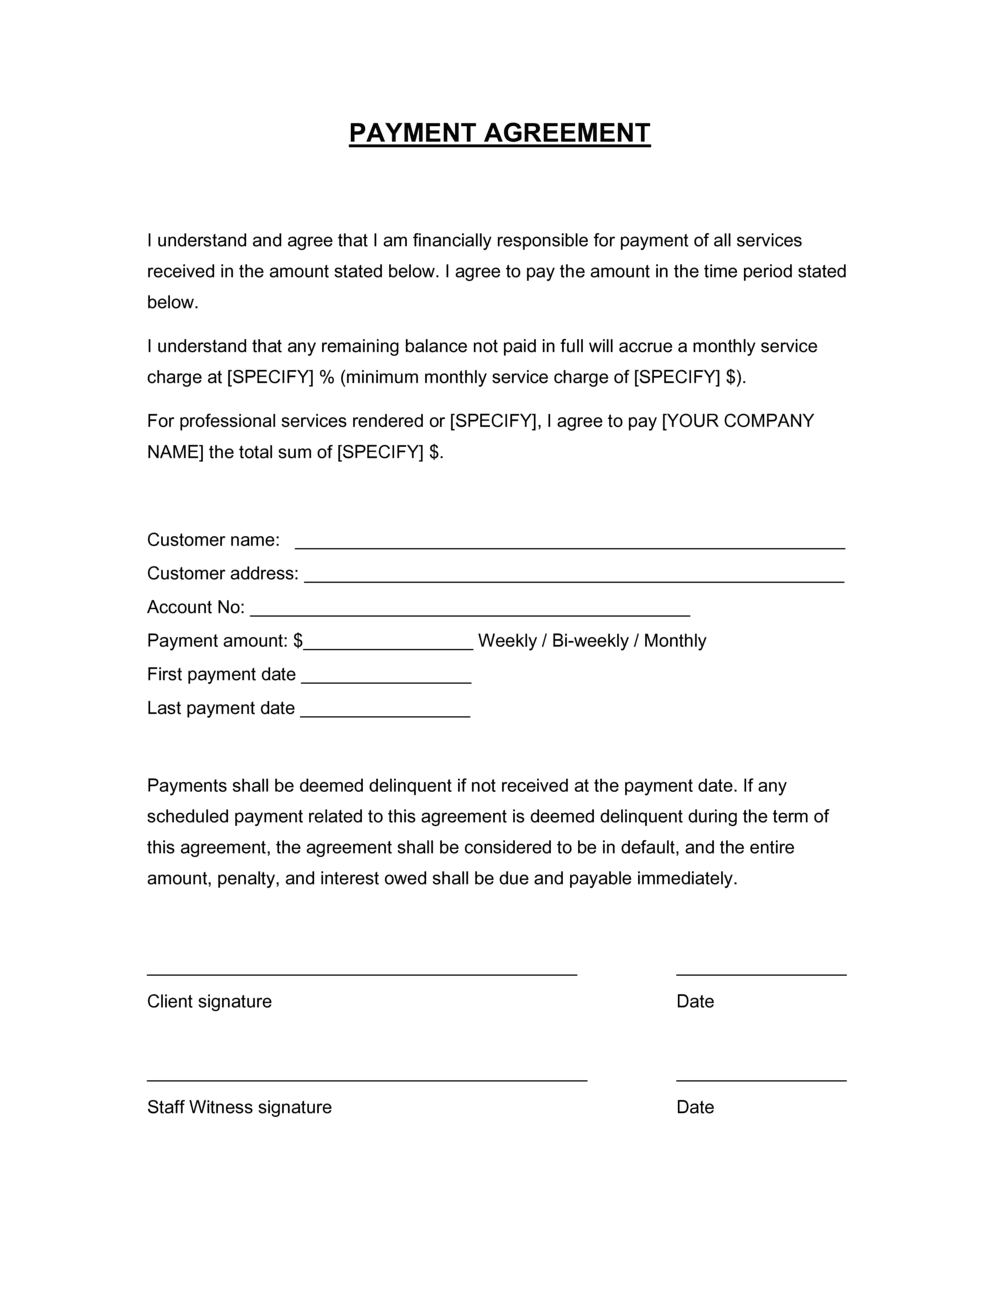 Business-in-a-Box's Payment Agreement Template